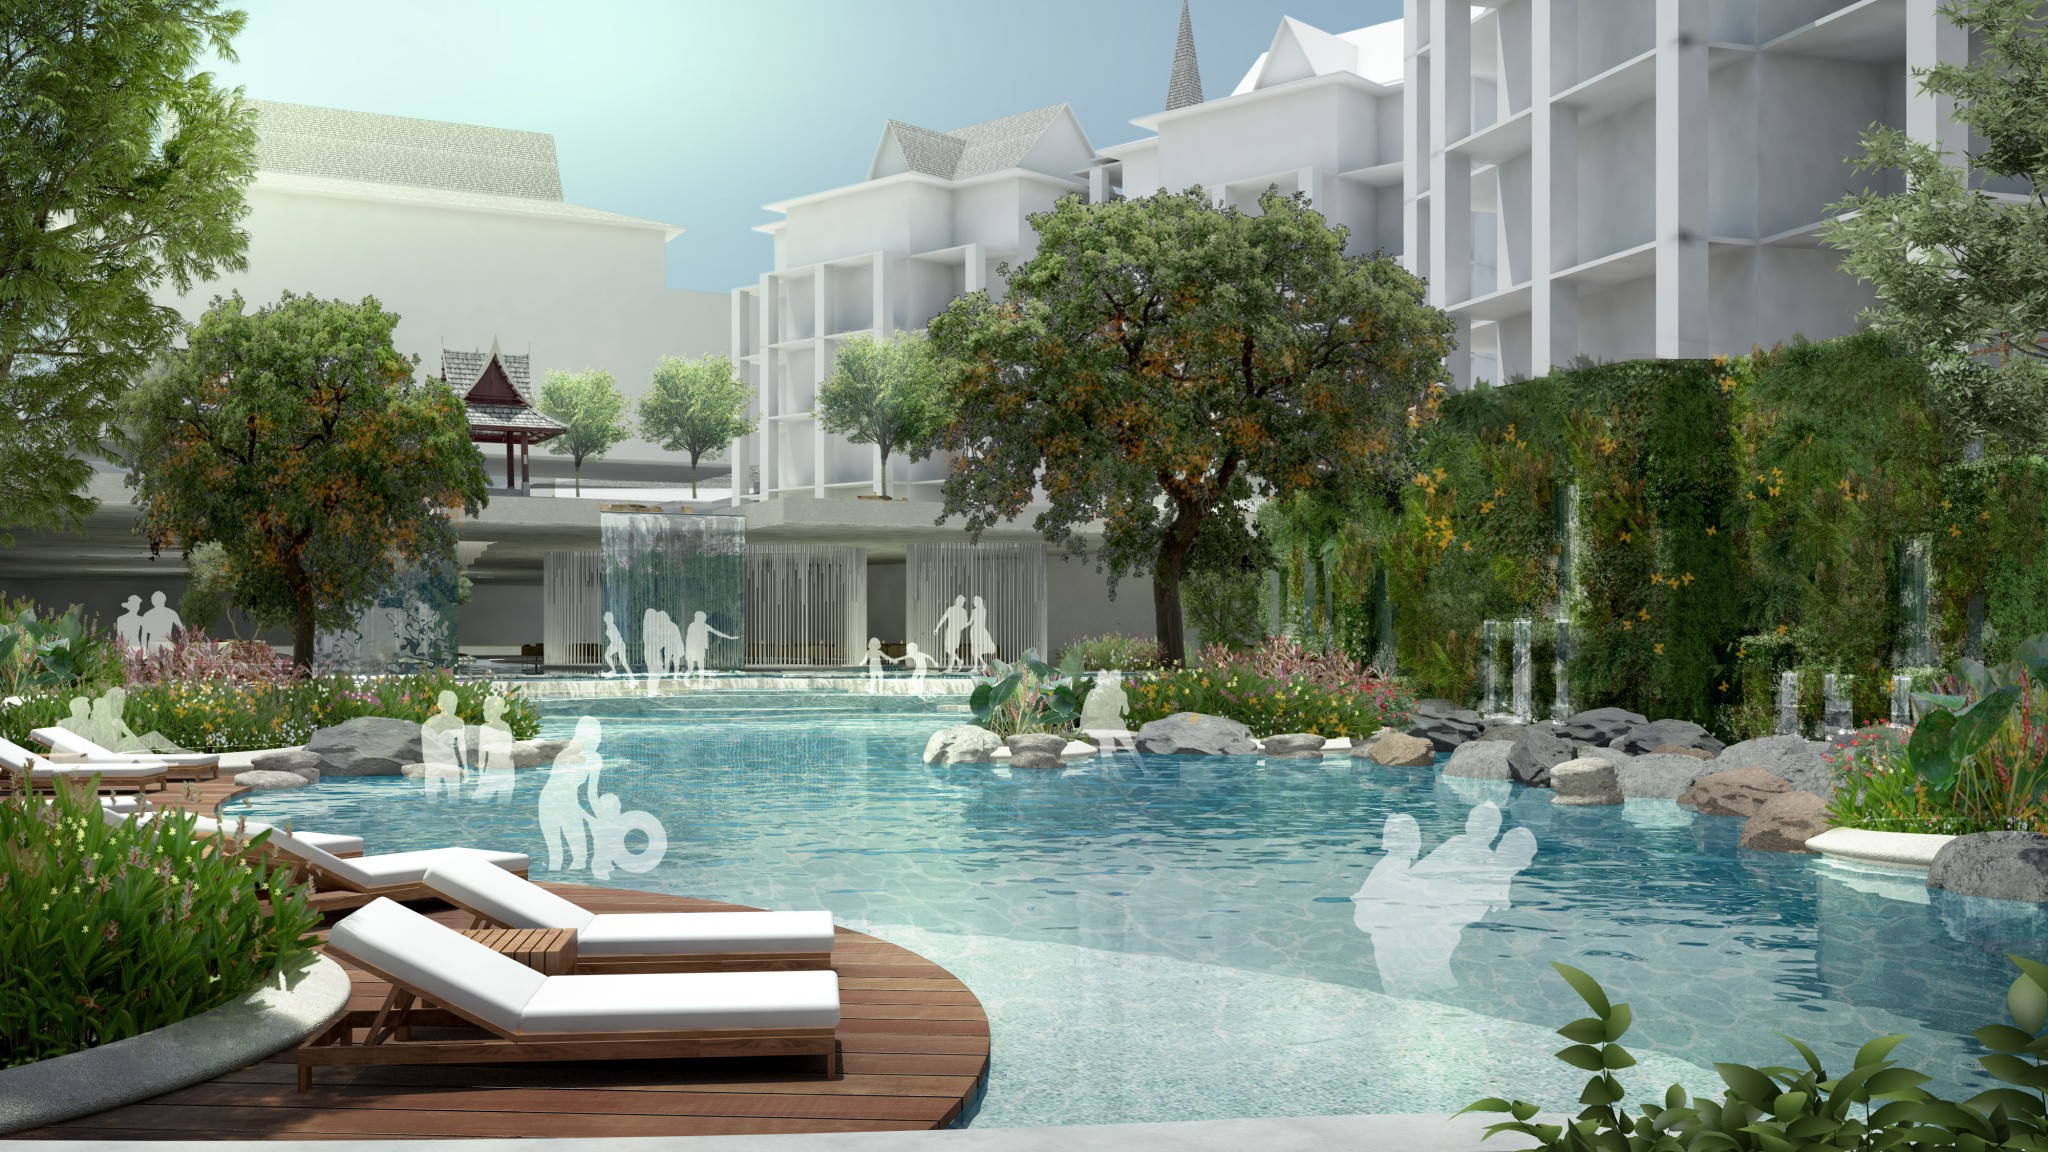 Angsana_Family Pool View_Update